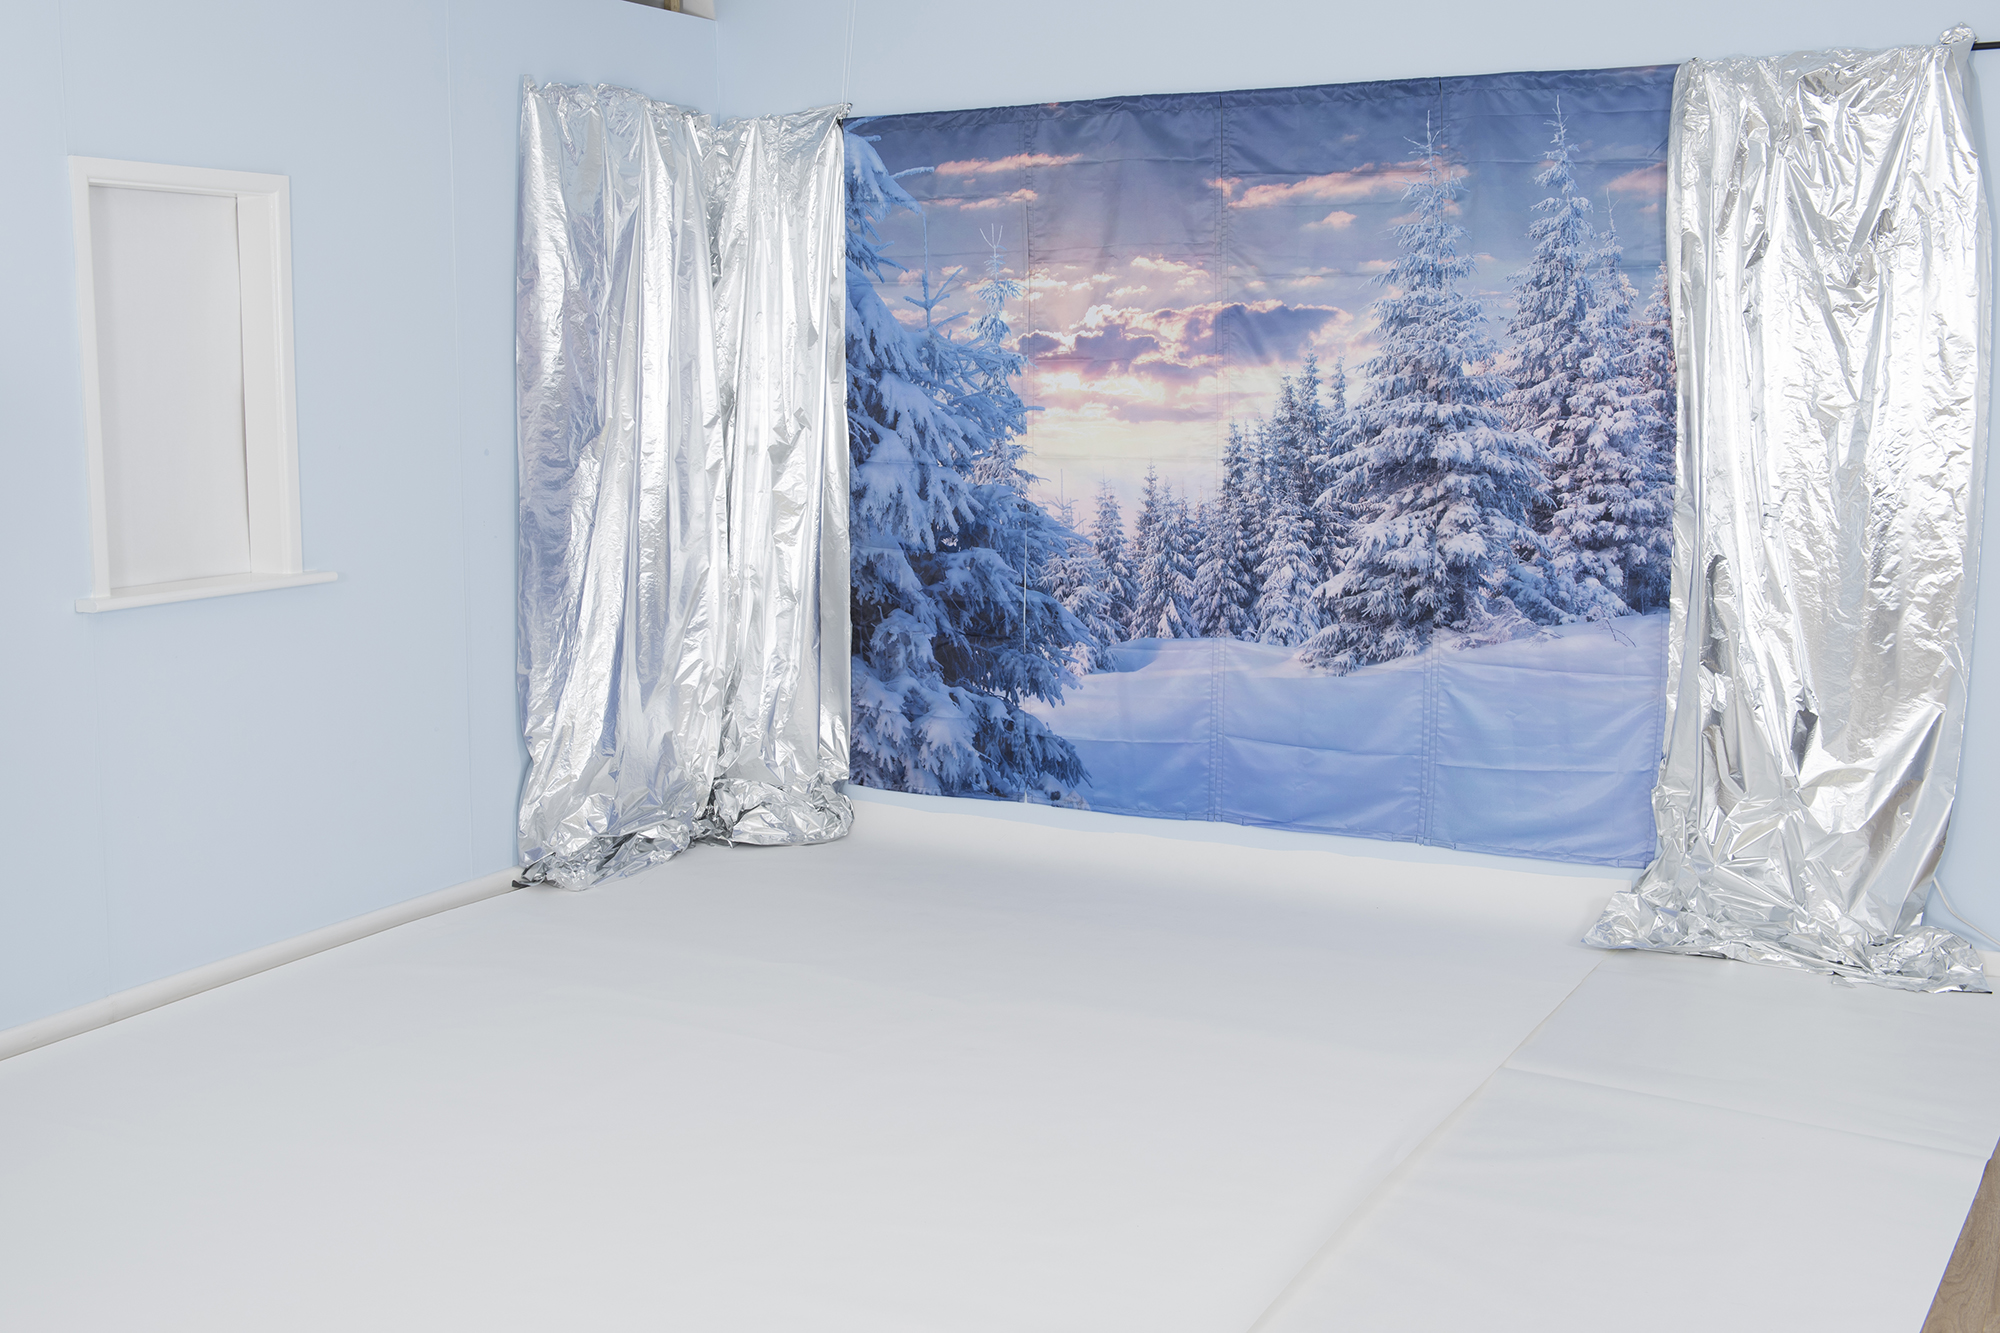 Frozen Immersive environment